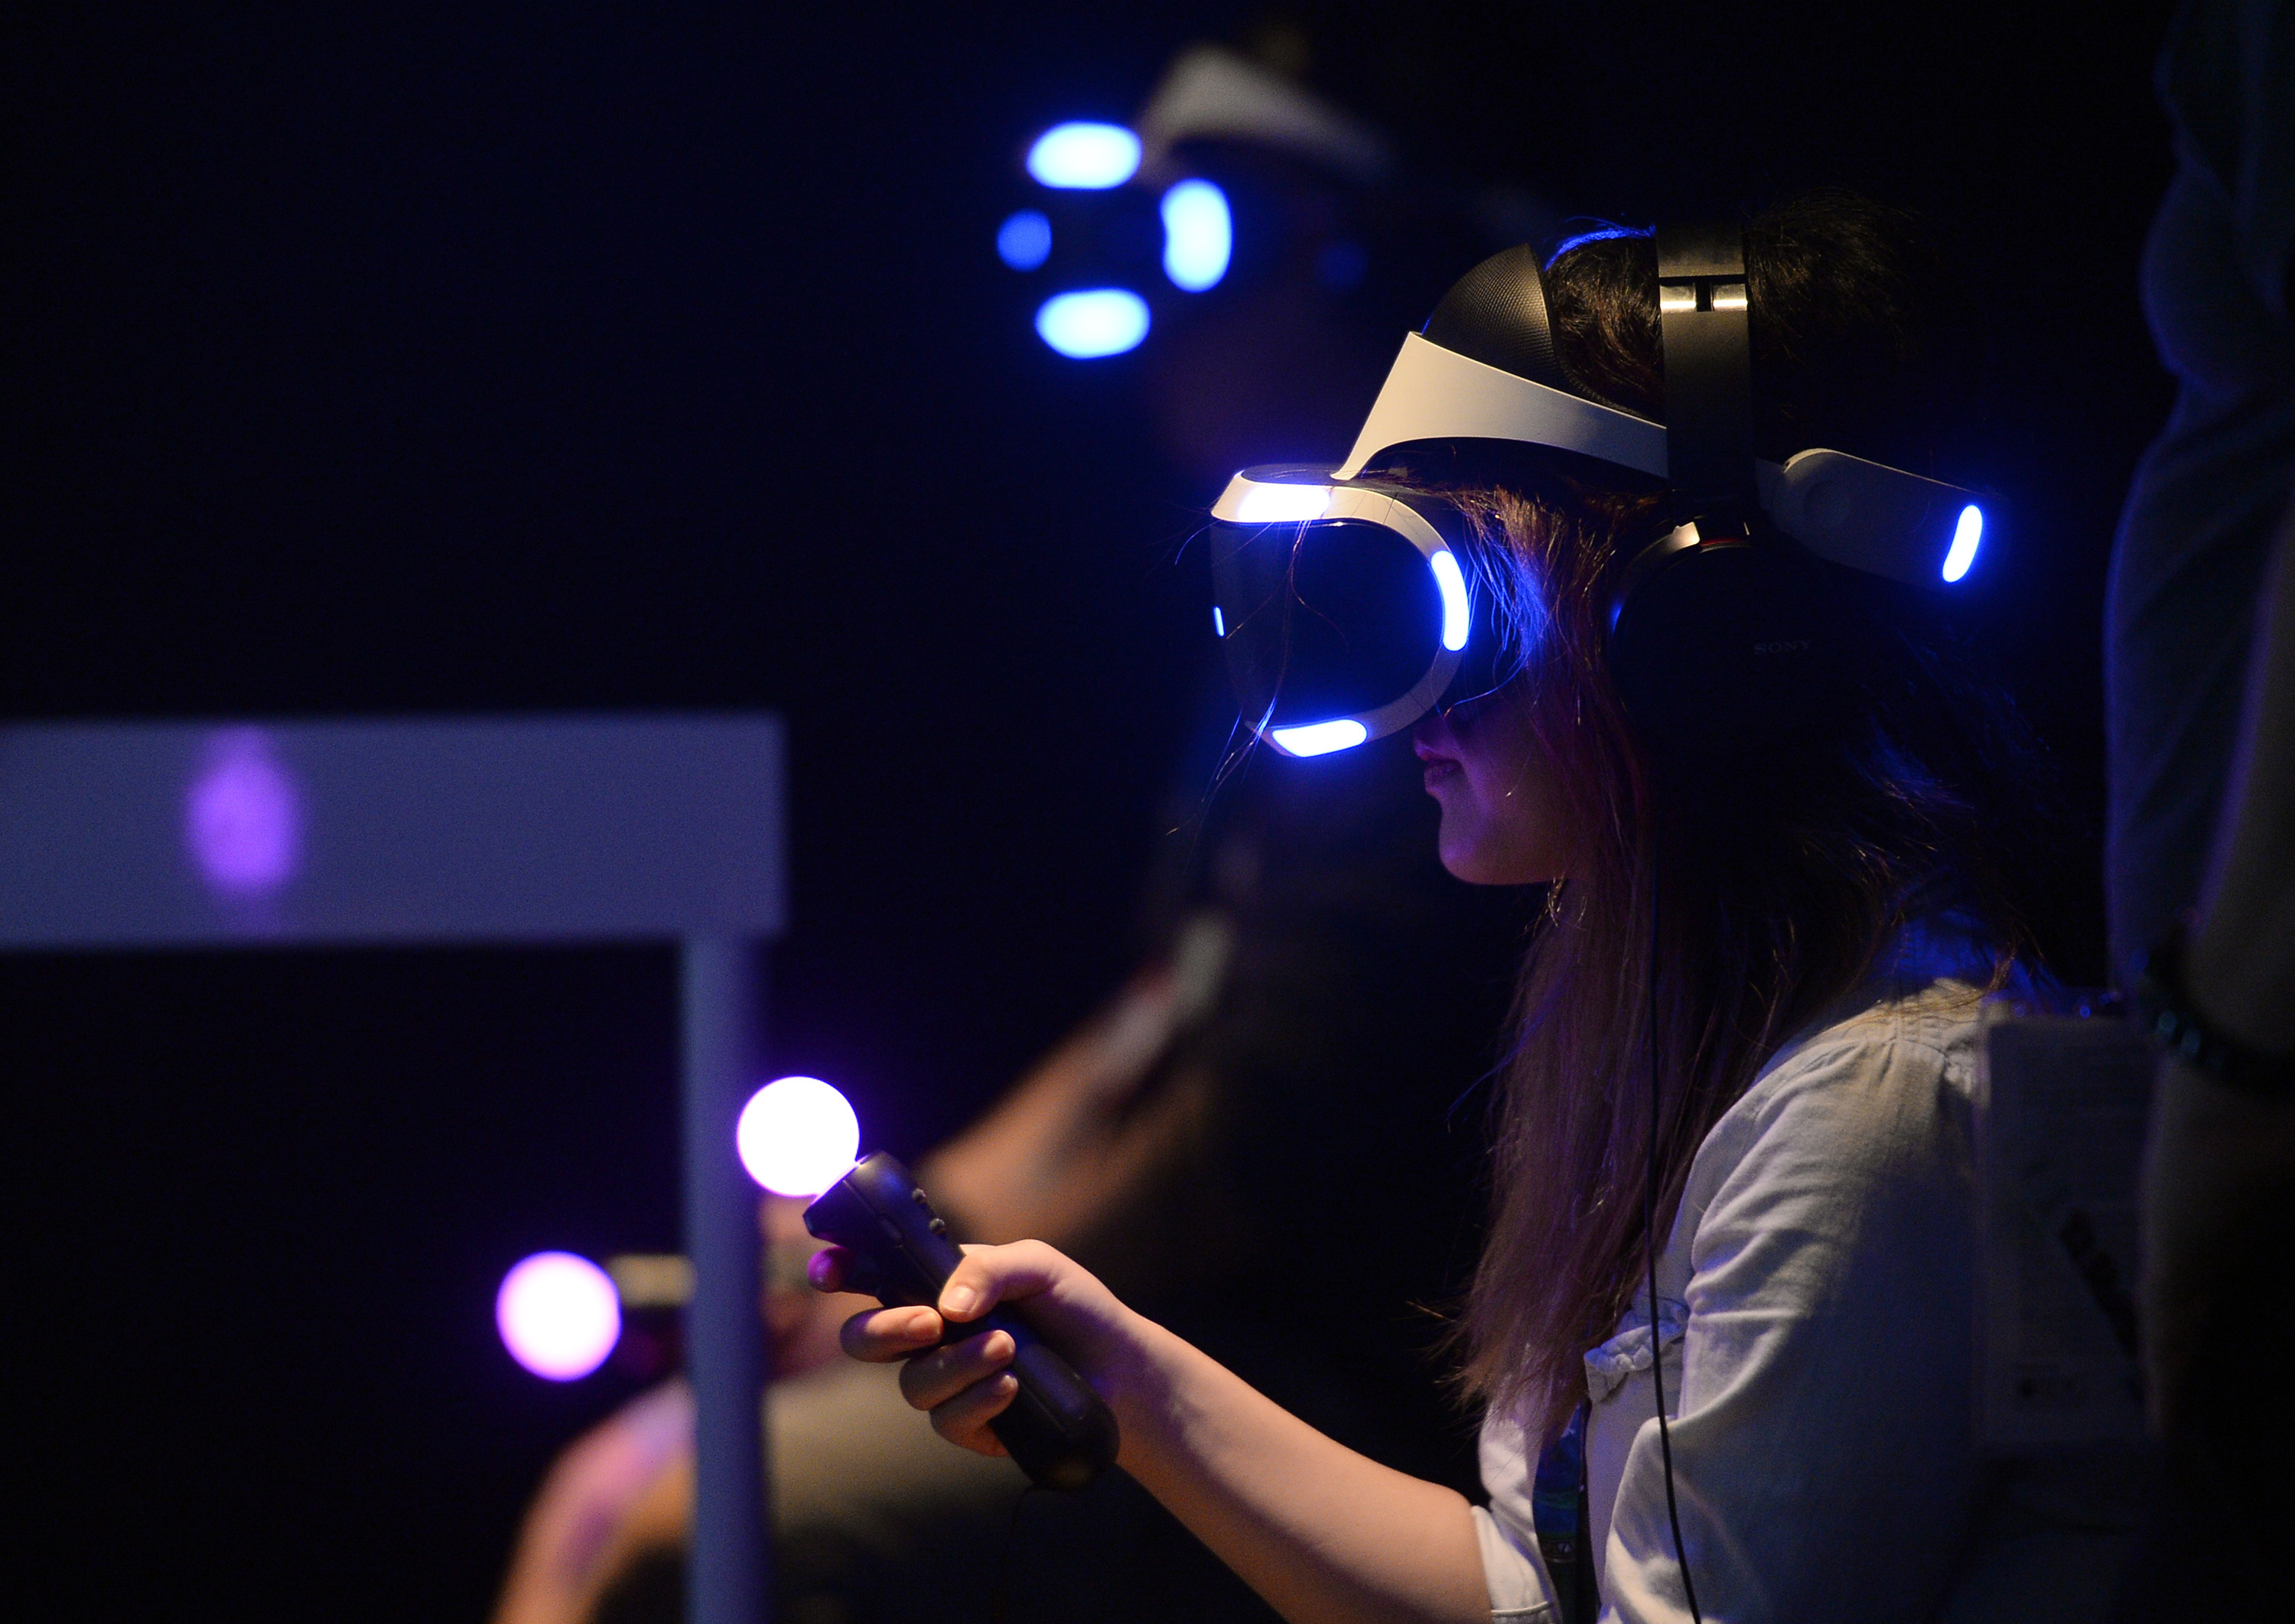 LOS ANGELES, CA - JUNE 14: Gamers try out the new Sony VR headset in Sony Playstation booth during the annual E3 2016 gaming conference at the Los Angeles Convention Center on June 14, 2016 in Los Angeles, California. The Electronic Entertainment Expo will run from June 14 -16. (Photo by Kevork Djansezian/Getty Images)